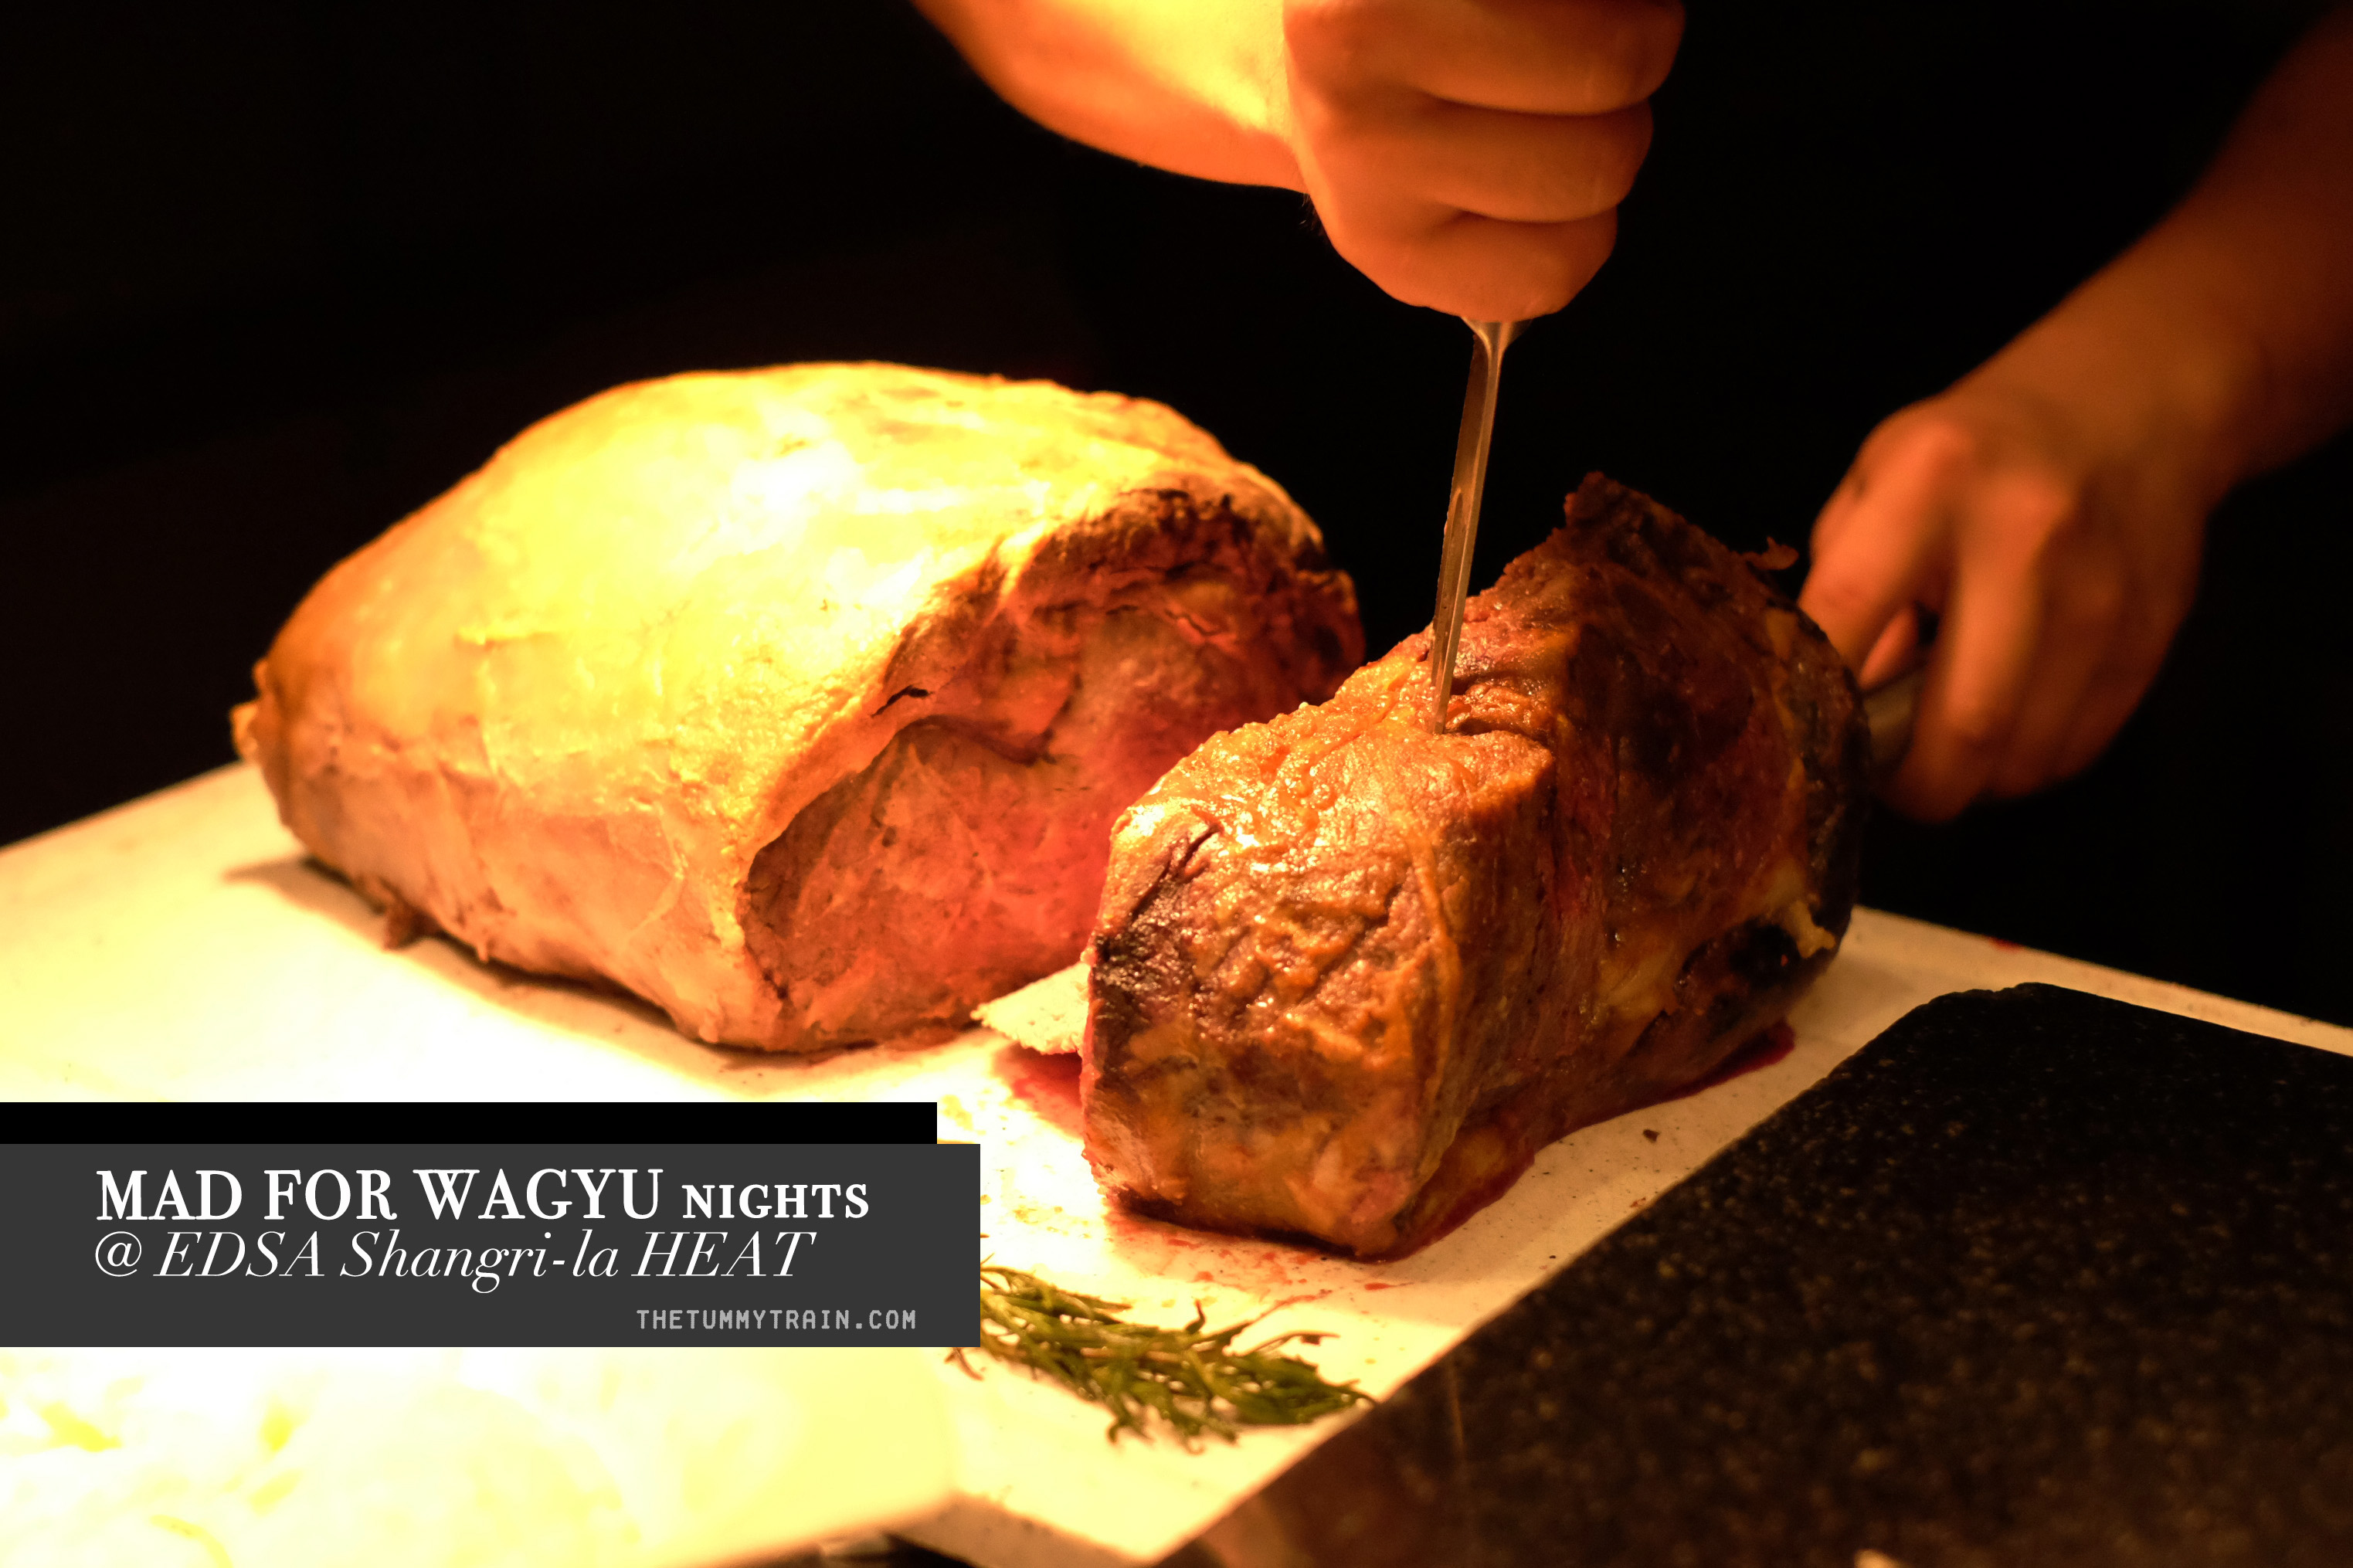 MAD FO WAGYU TITLE - Over a dozen ways to go Mad For Wagyu at EDSA Shangri-la's HEAT (2017)